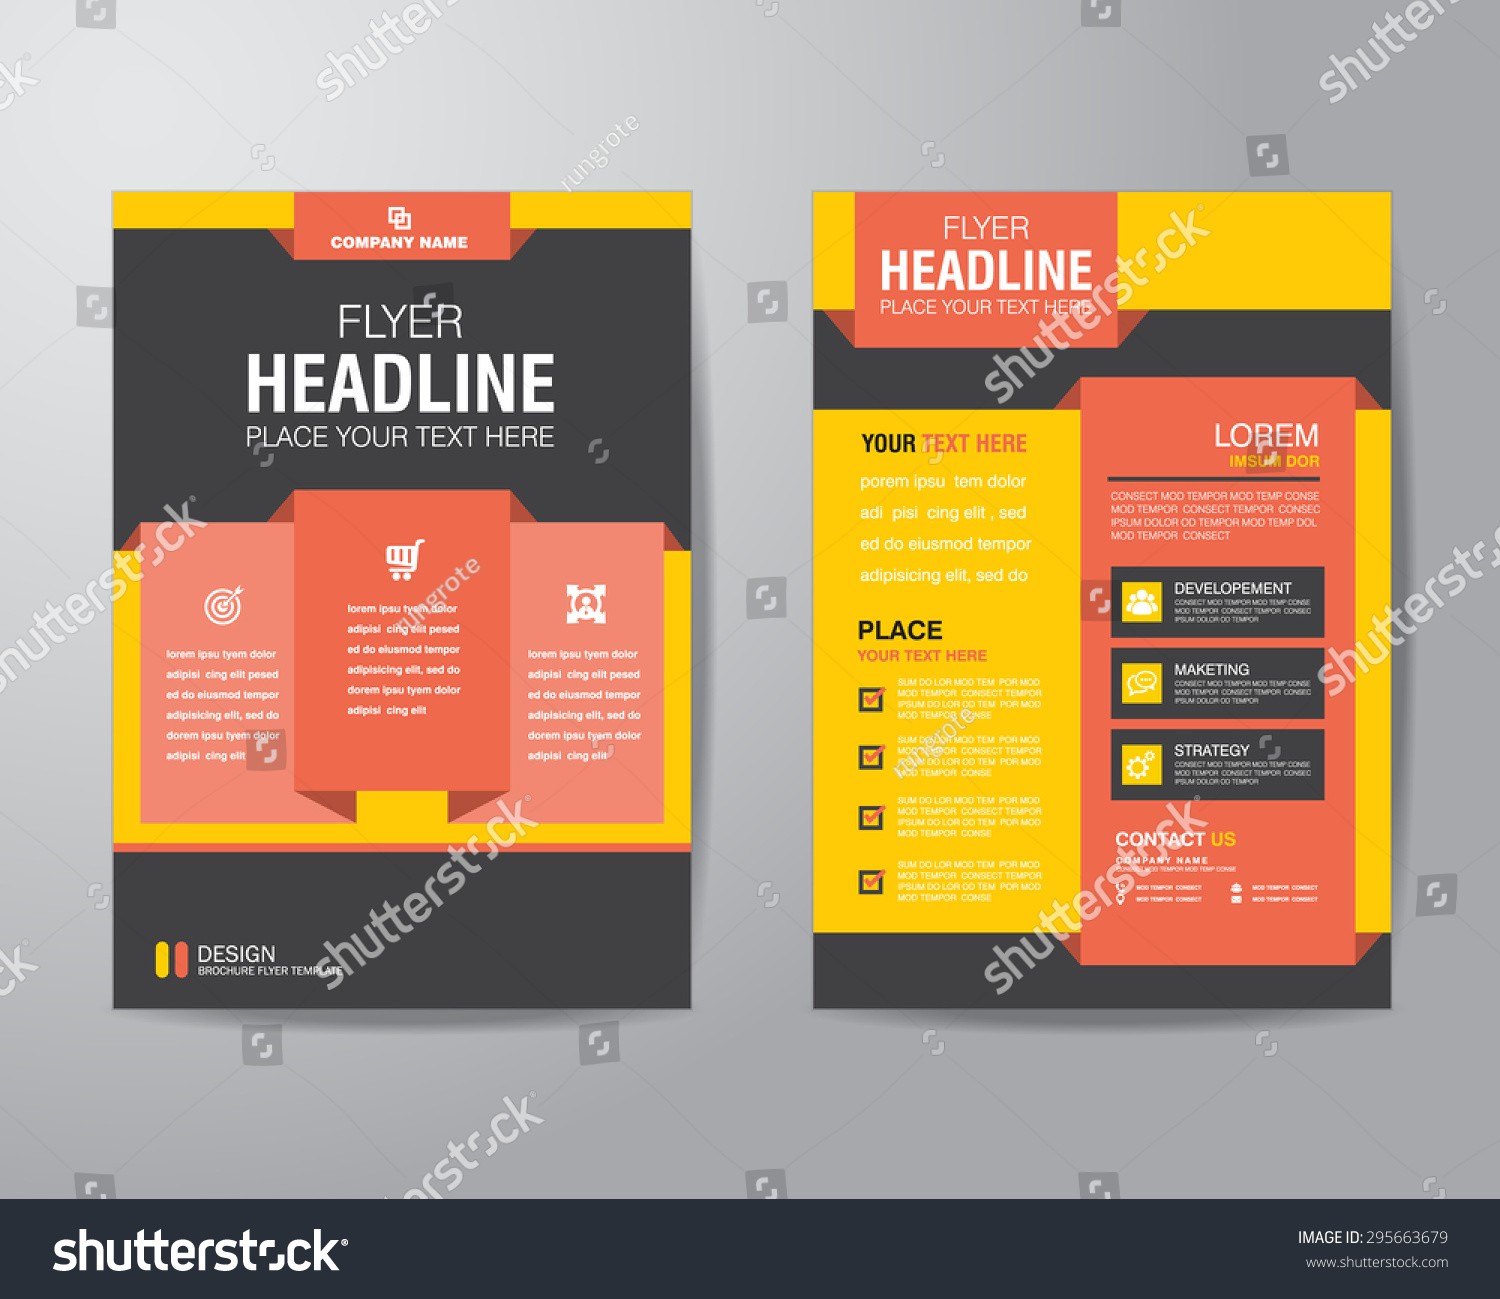 Corporate brochure flyer design layout template stock for Brochure size template